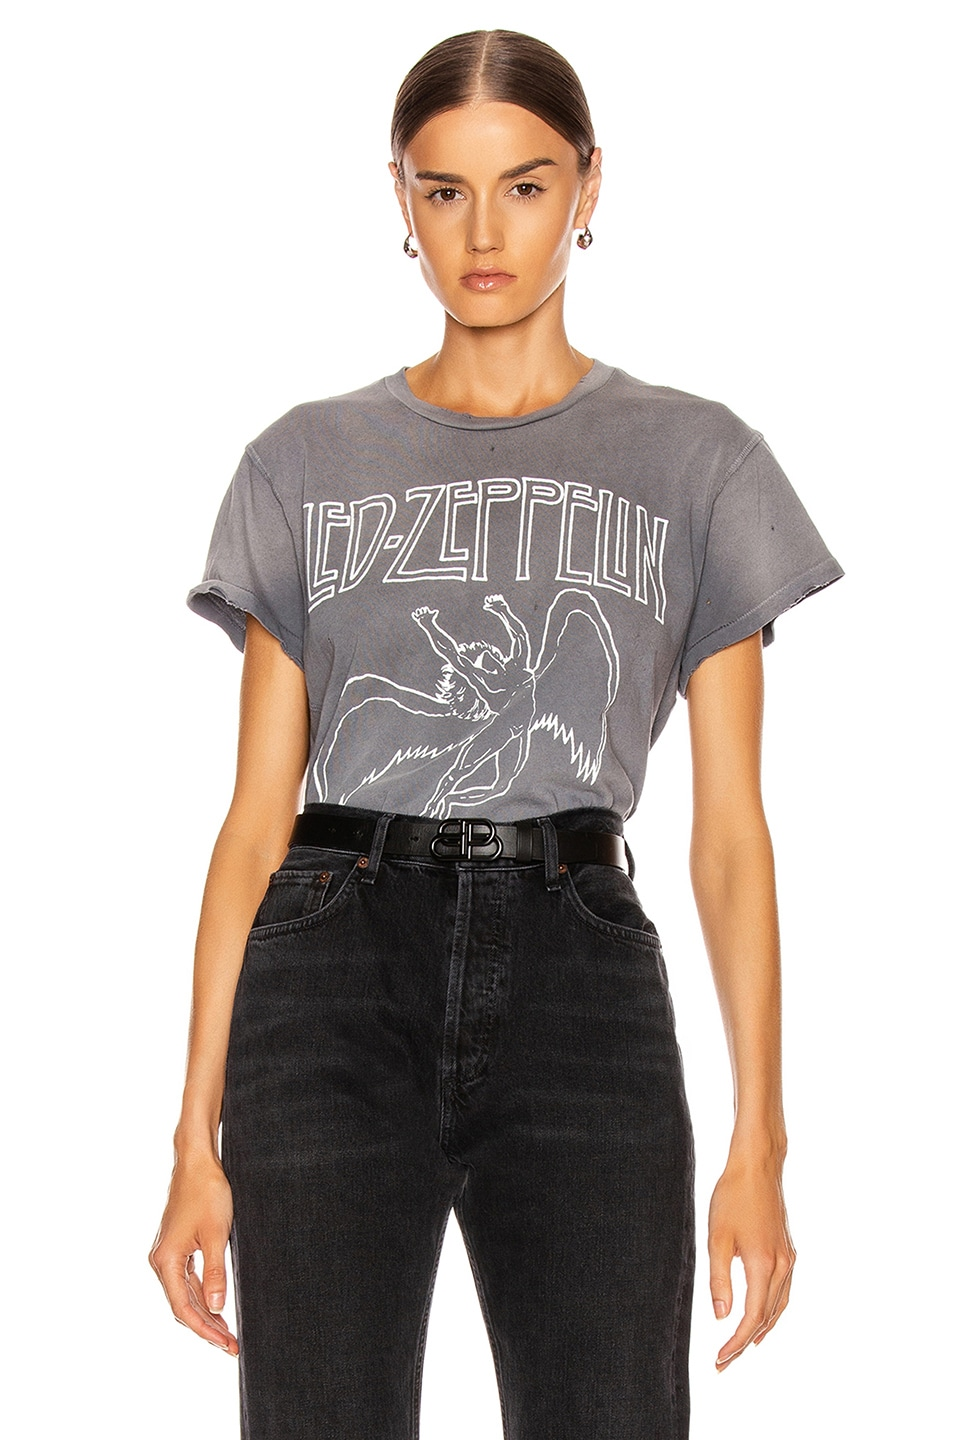 Image 1 of Madeworn Led Zeppelin United States Of America '77 Crew Tee in Charcoal